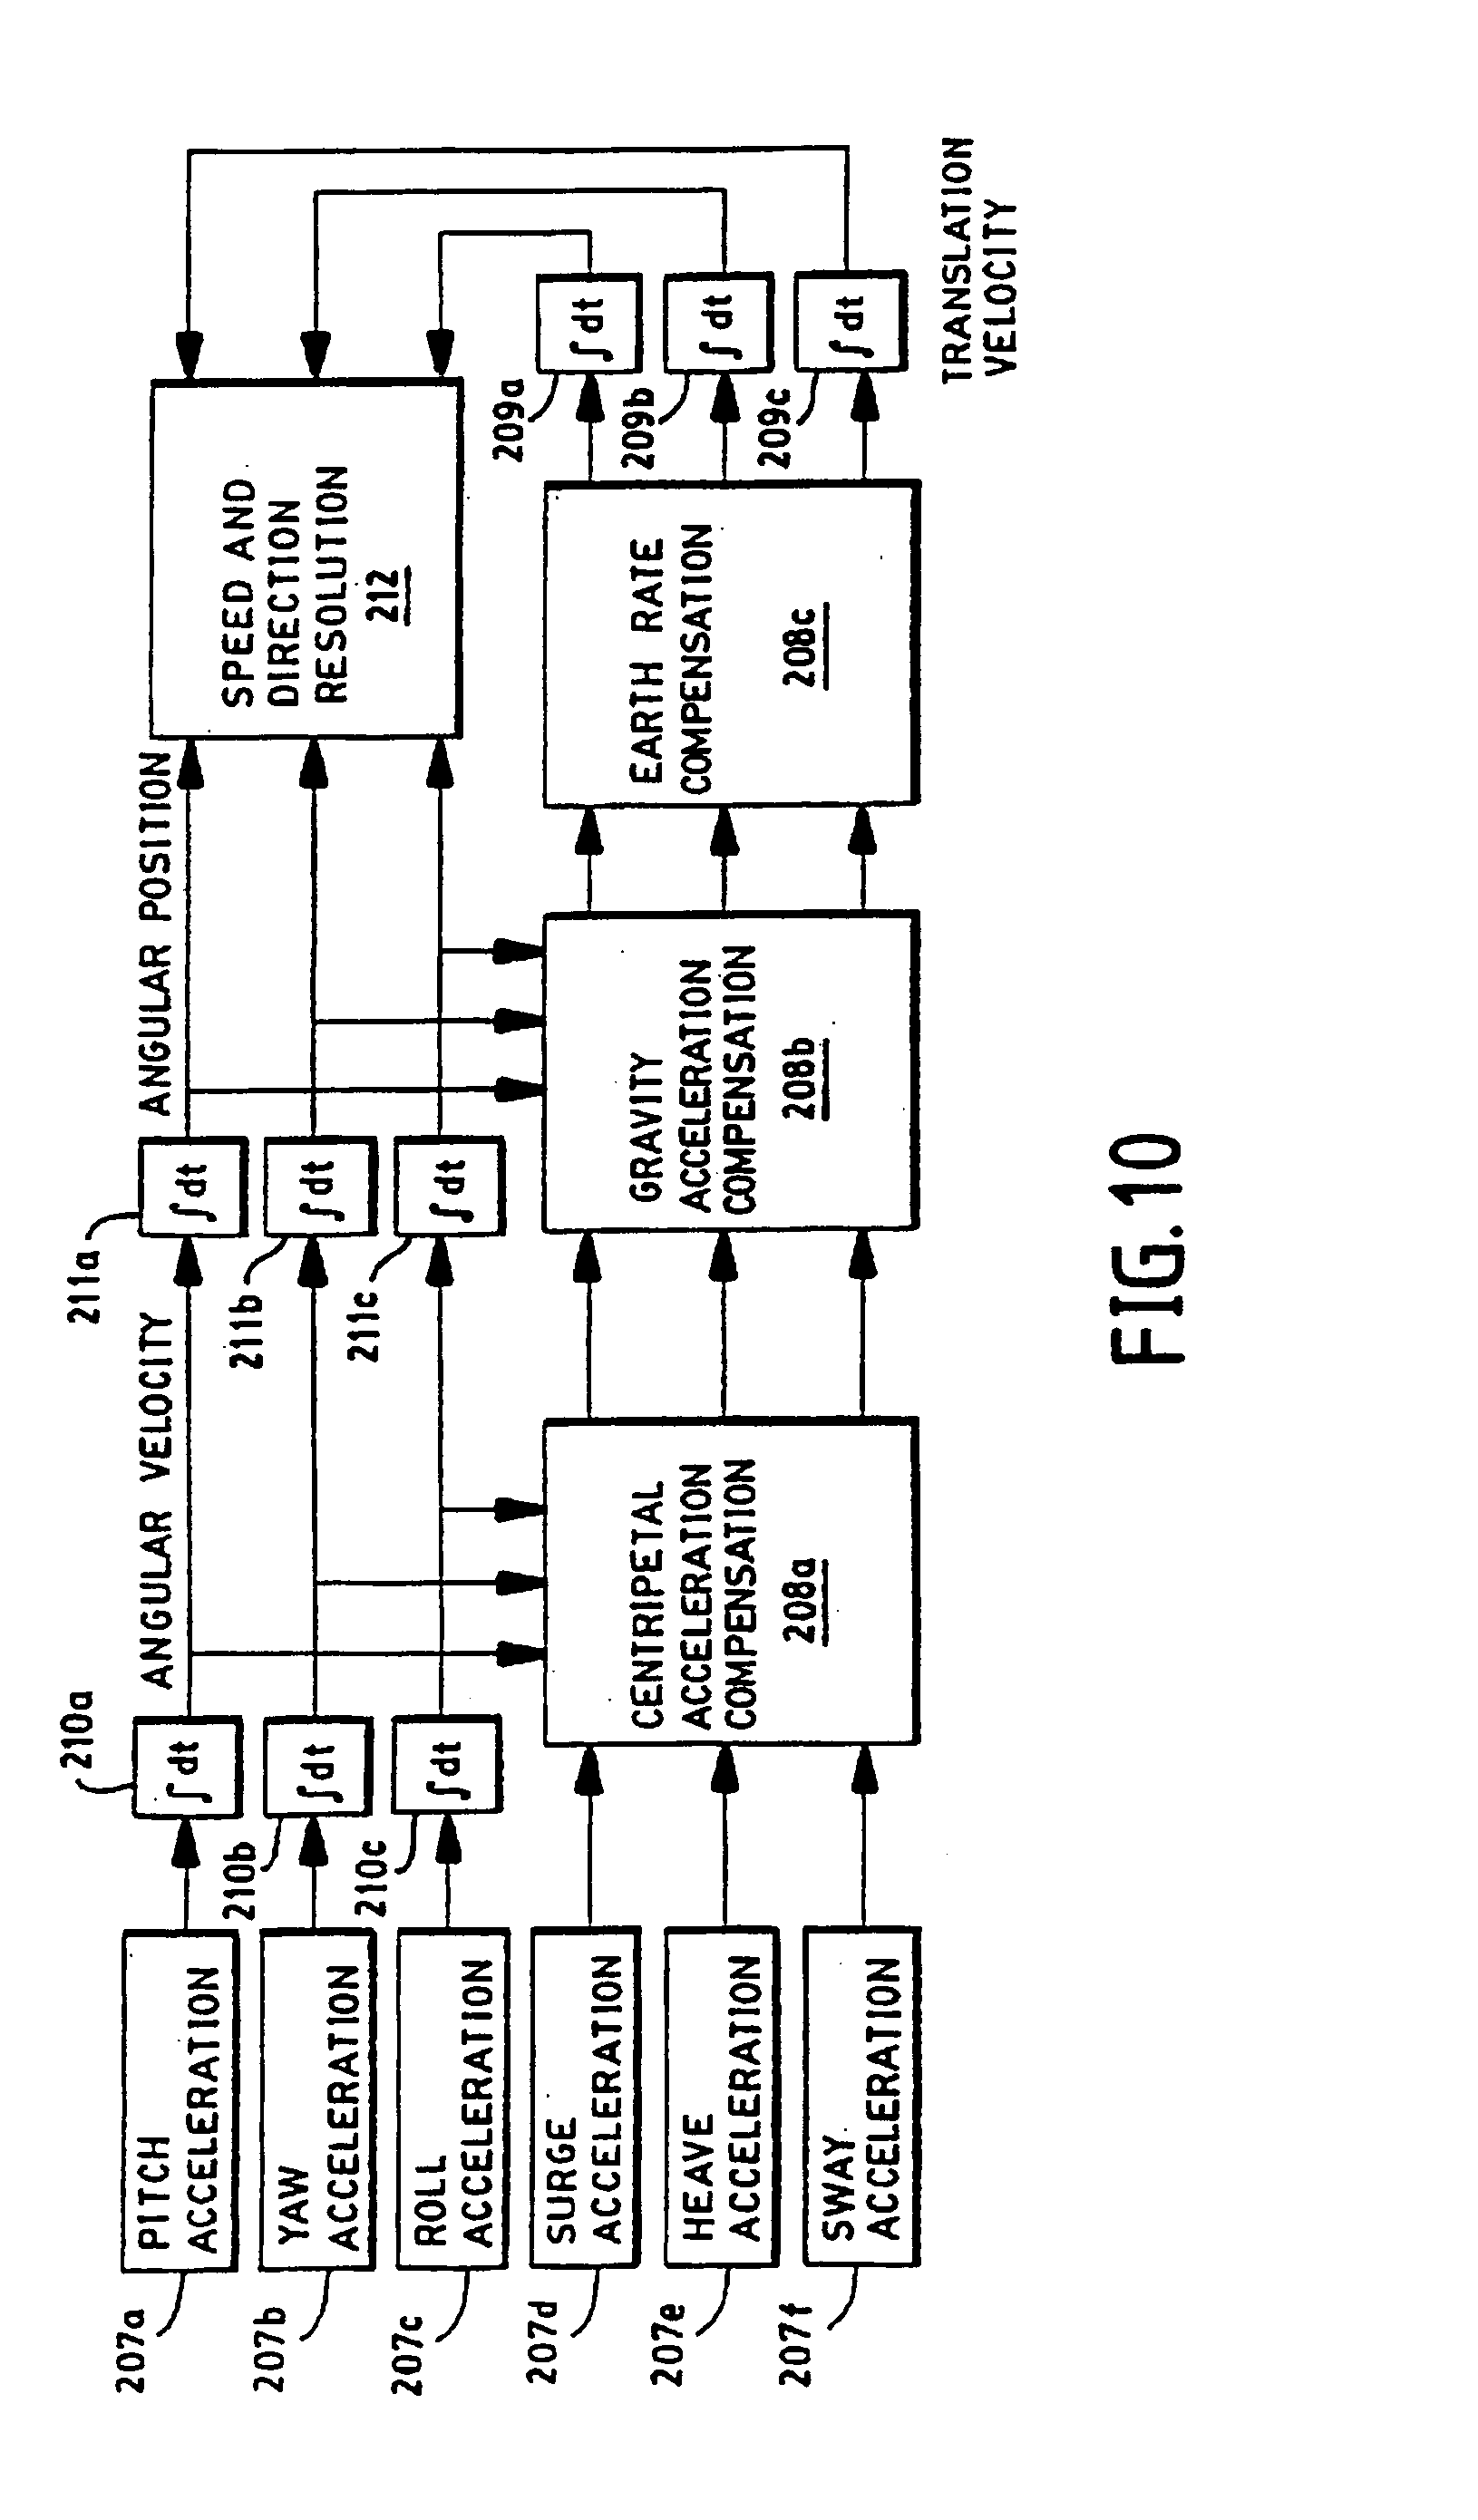 Patent Us 7092846 B2 Law Resistor Combinations Analogy In Water Circuit Index Dc Circuits